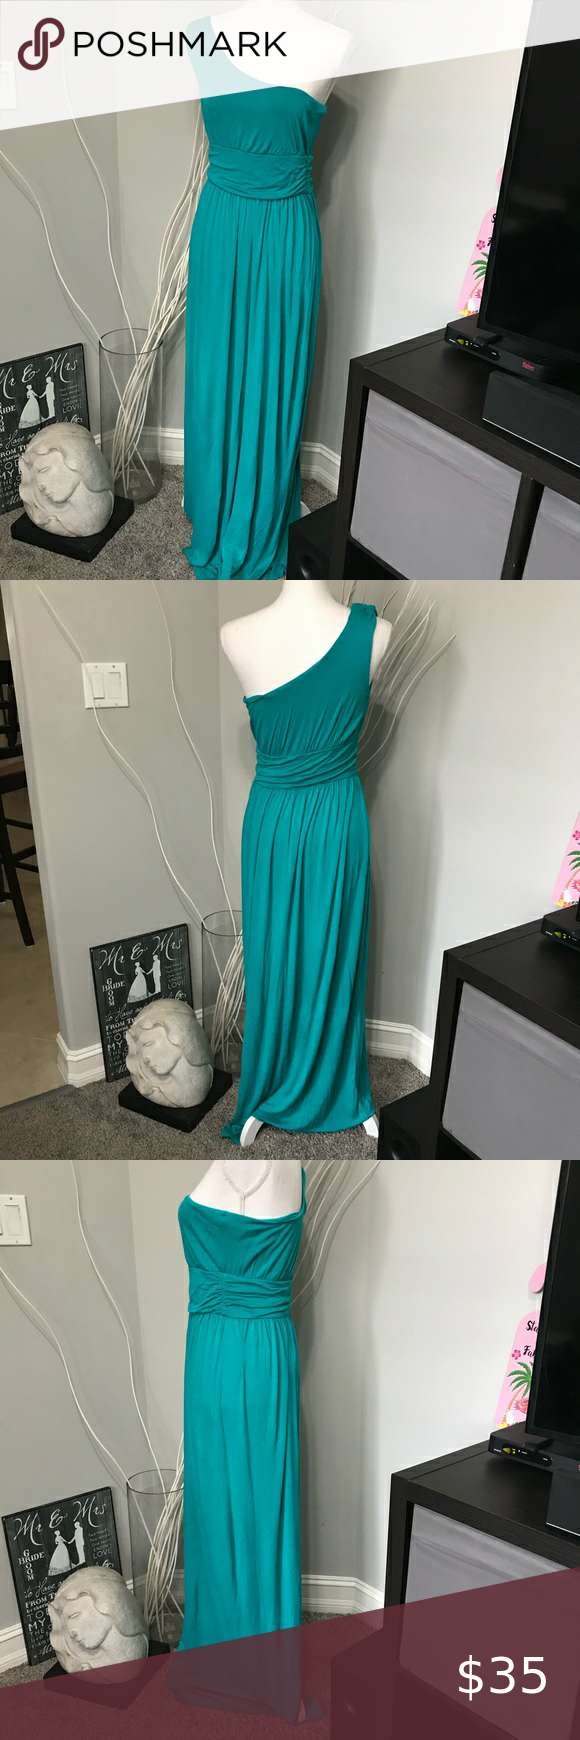 Body Central Teal One Shoulder Stretchy Maxi Dress Body Central Dresses Body Dress Womens Maxi Dresses [ 1740 x 580 Pixel ]